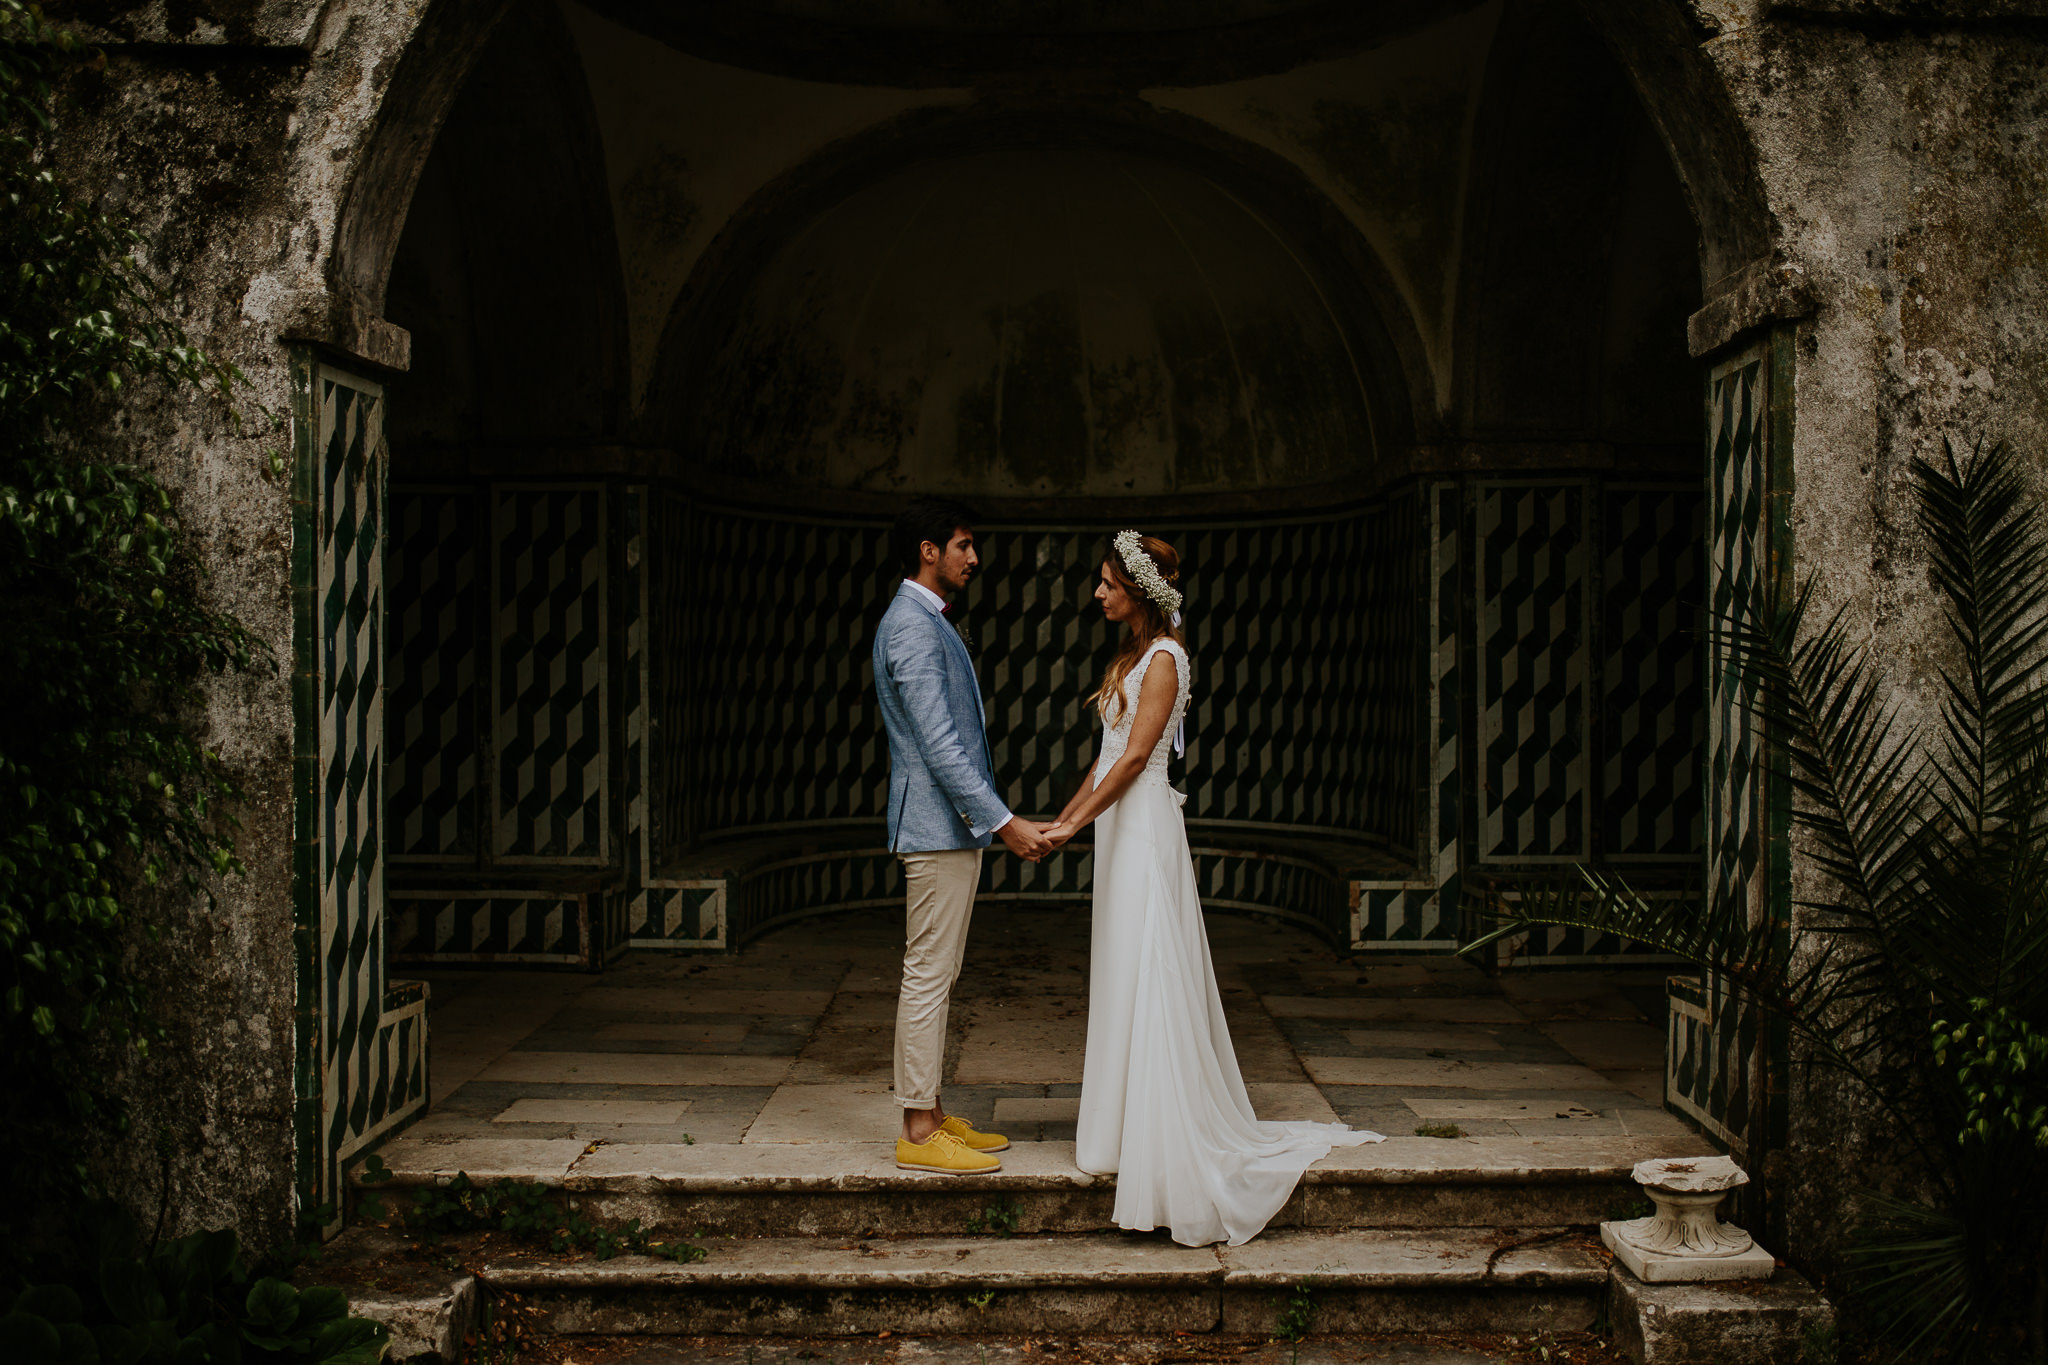 romina_thomas_destination_wedding_photography_fotografia_de_casamento_lisbon_sintra_penha_longa_resort-52